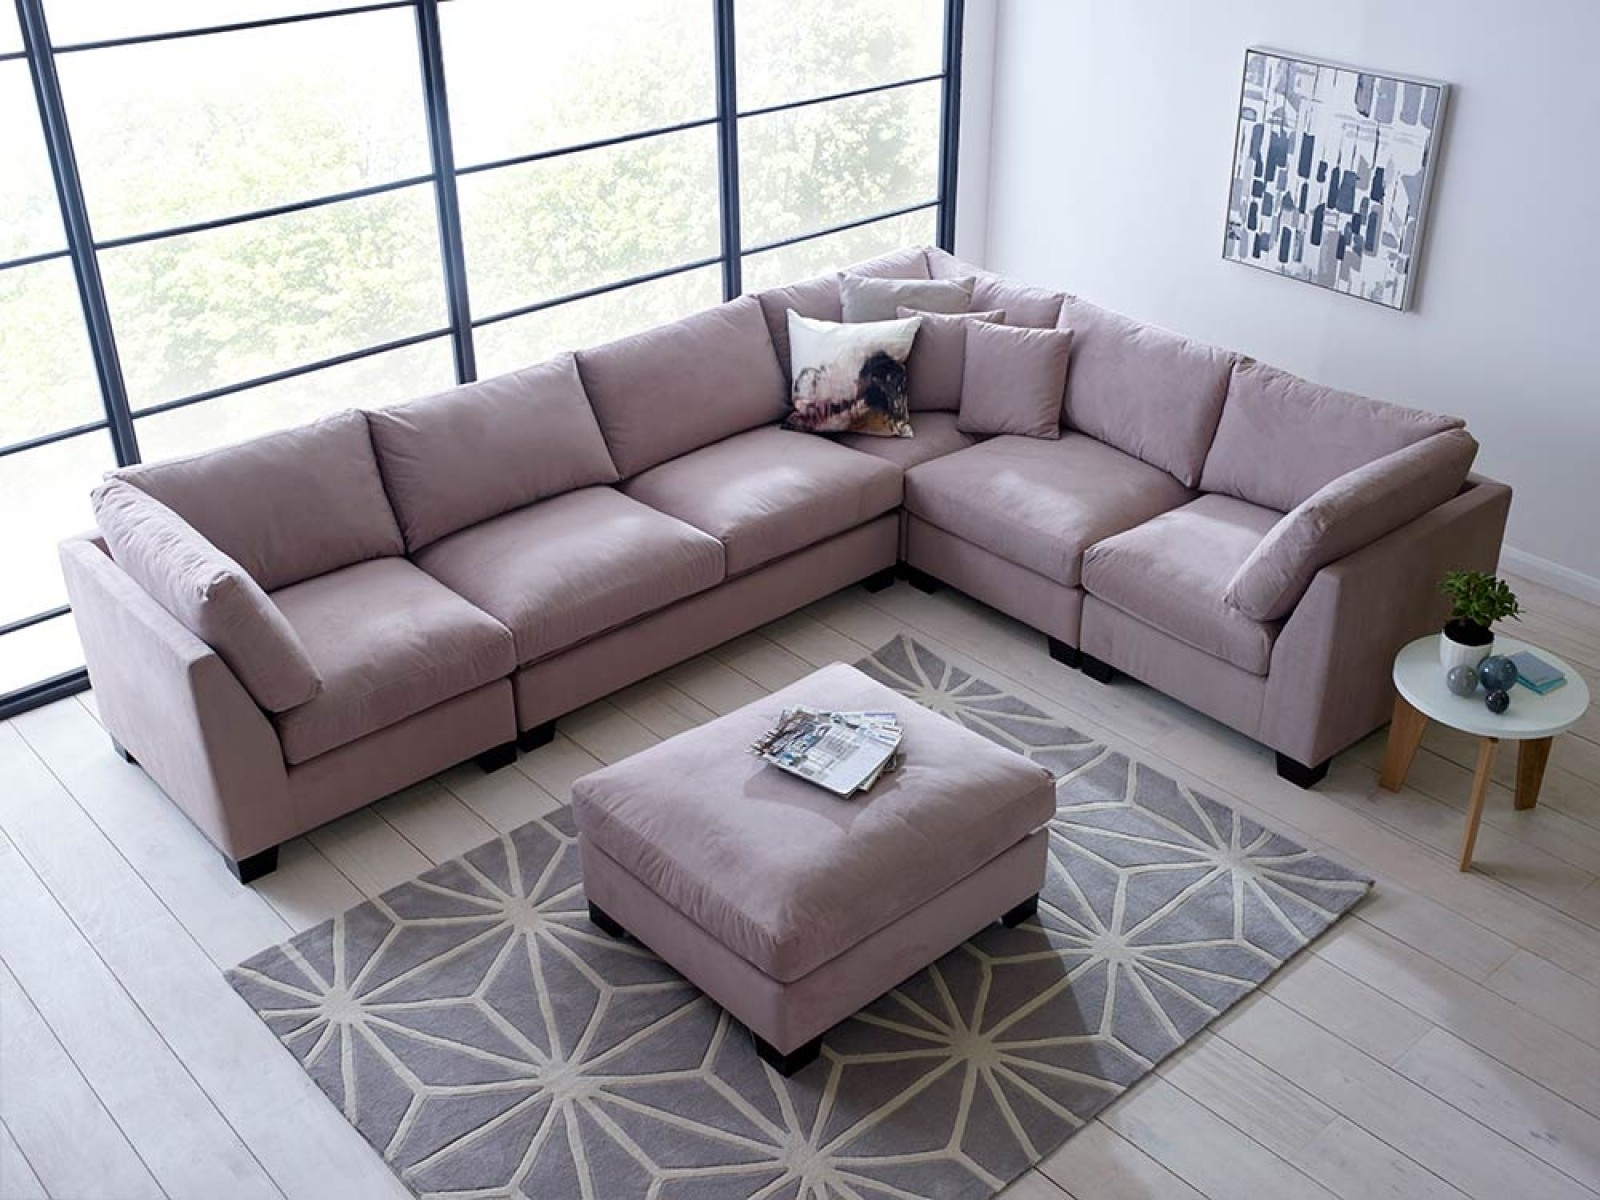 Modular Sofas, Sectional Sofas | Living It Up Throughout Sectional Sofas That Can Be Rearranged (Image 5 of 10)